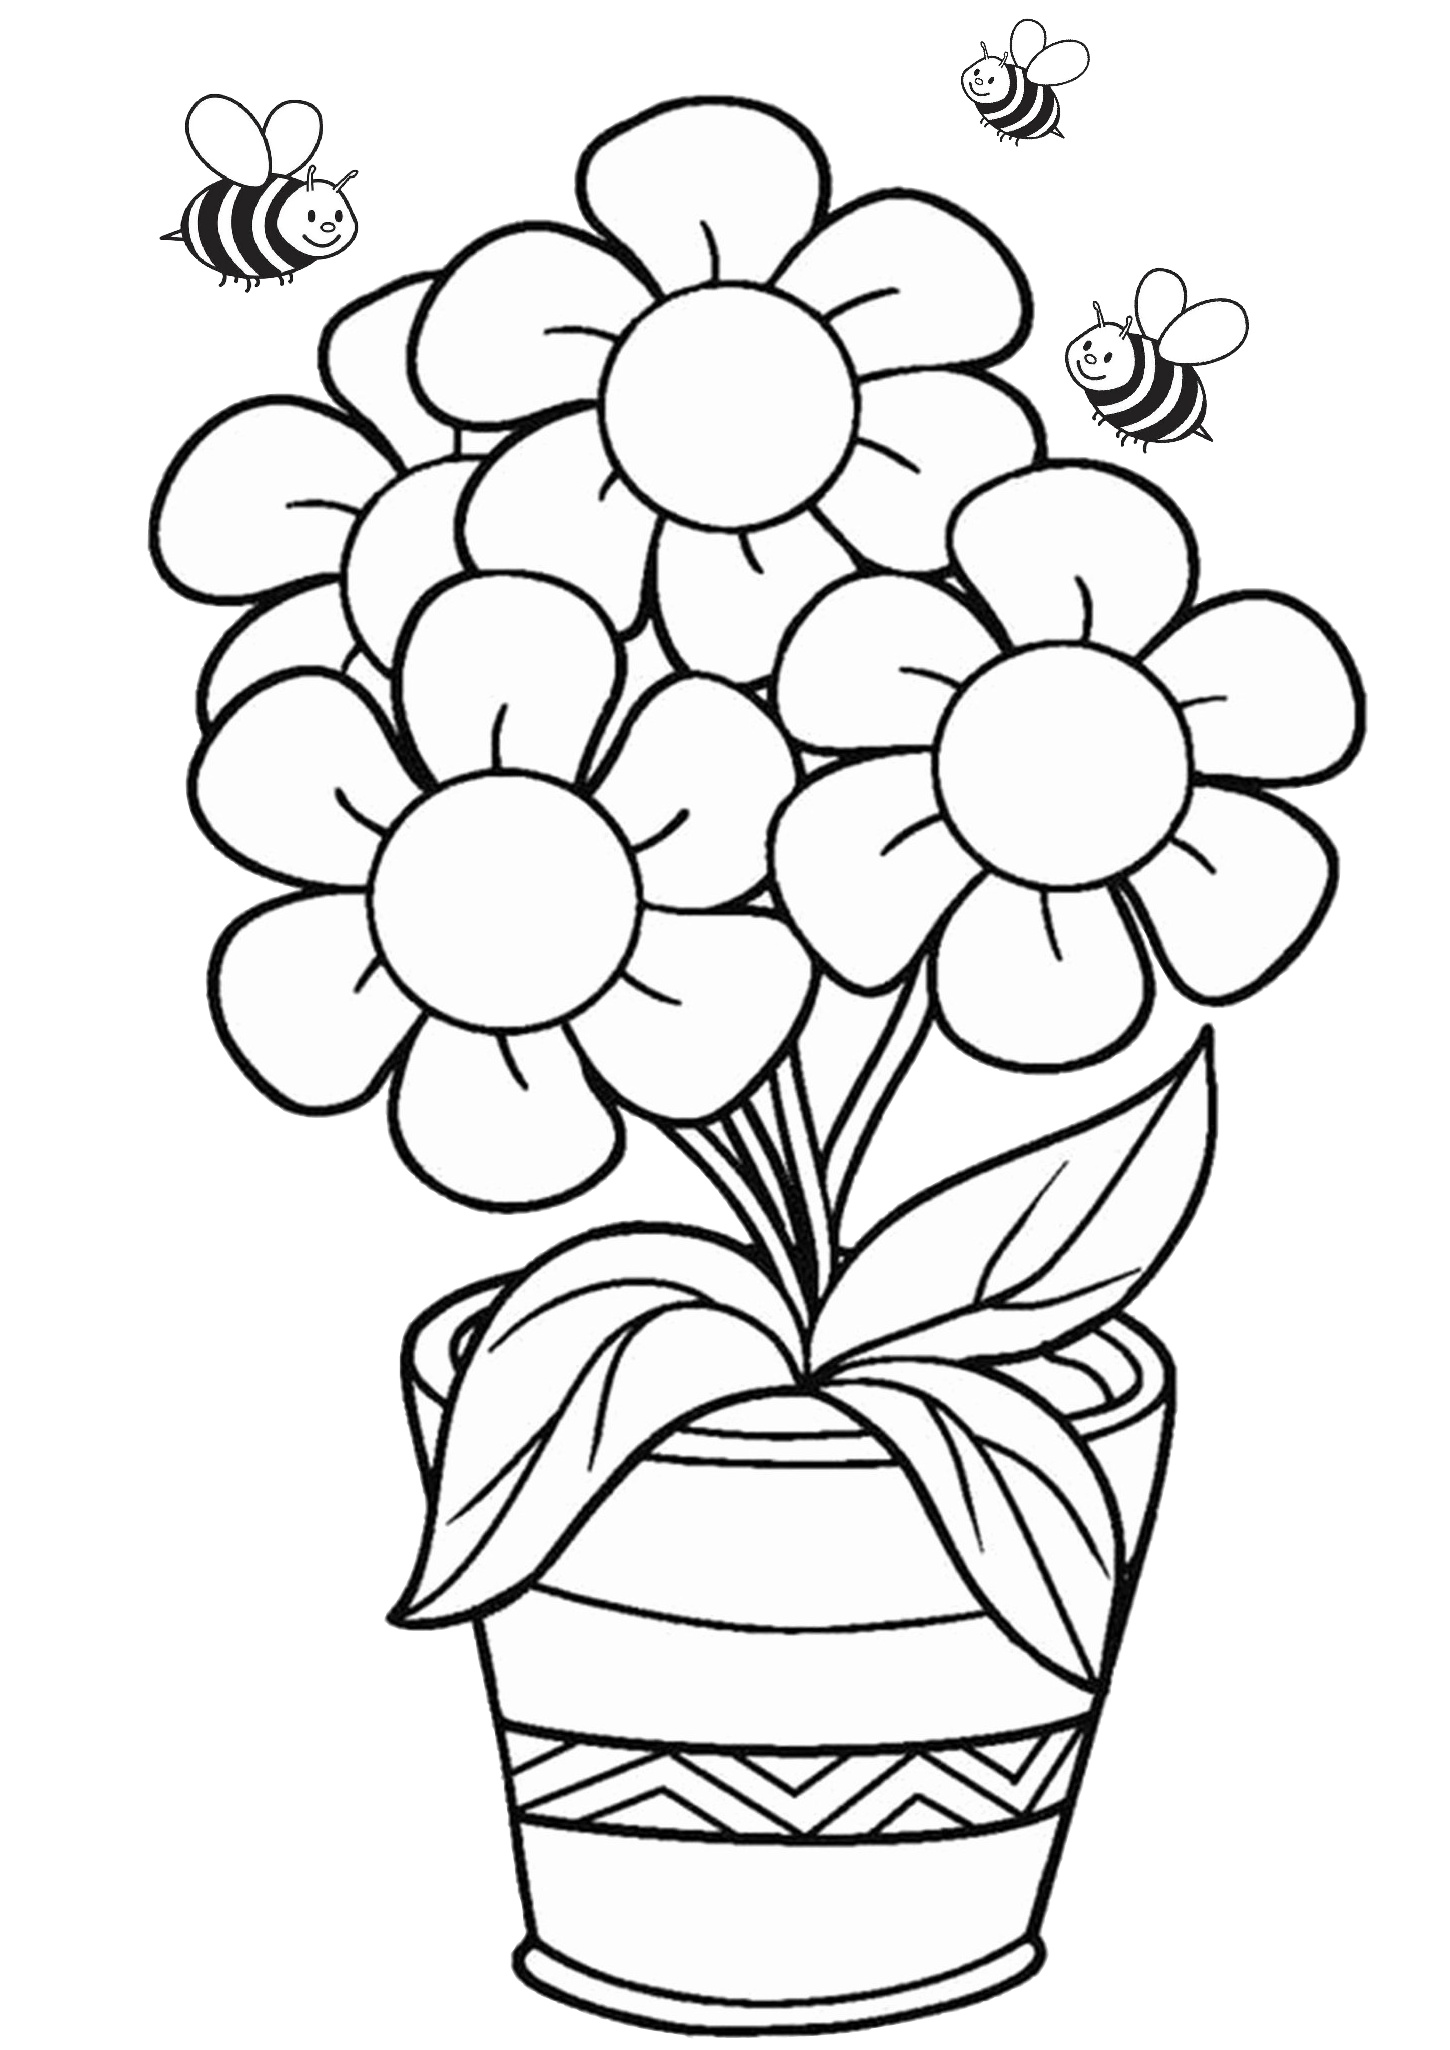 easy cute rose coloring pages 36 printable flower coloring pages for adults kids cute easy rose coloring pages